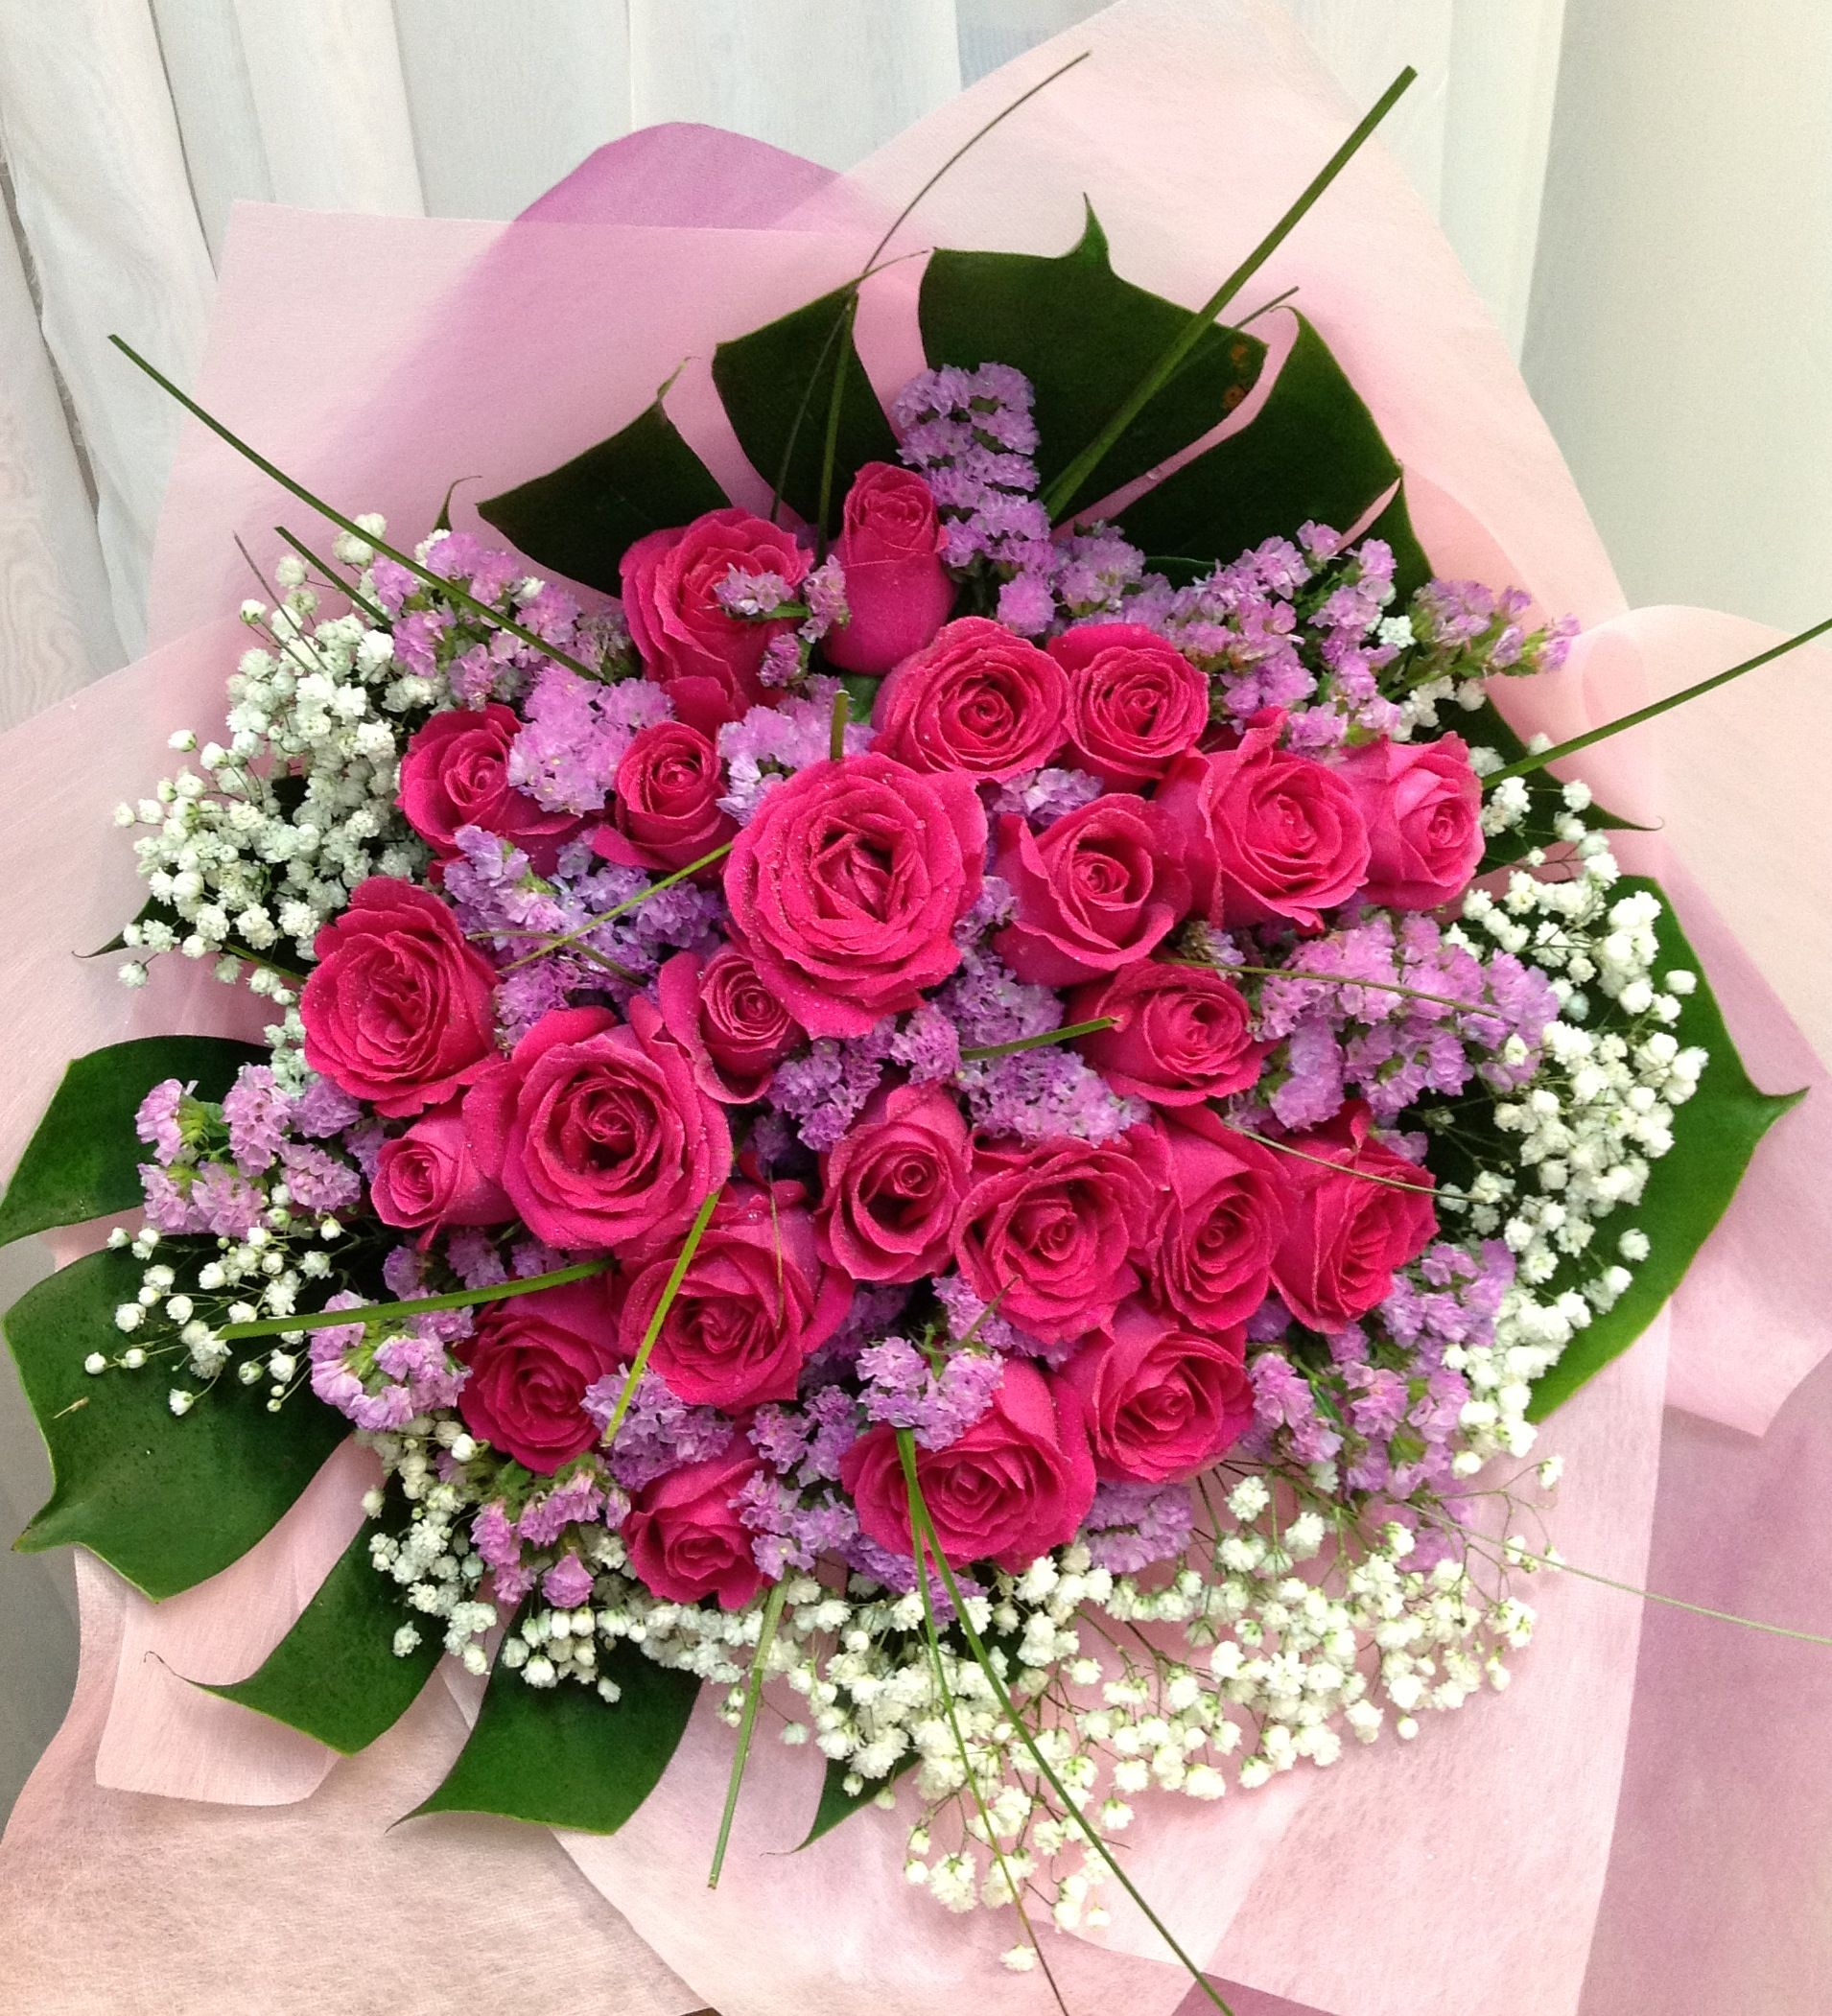 Bunches http:\/\/www.a1puneflowers.com | Same day flower ...